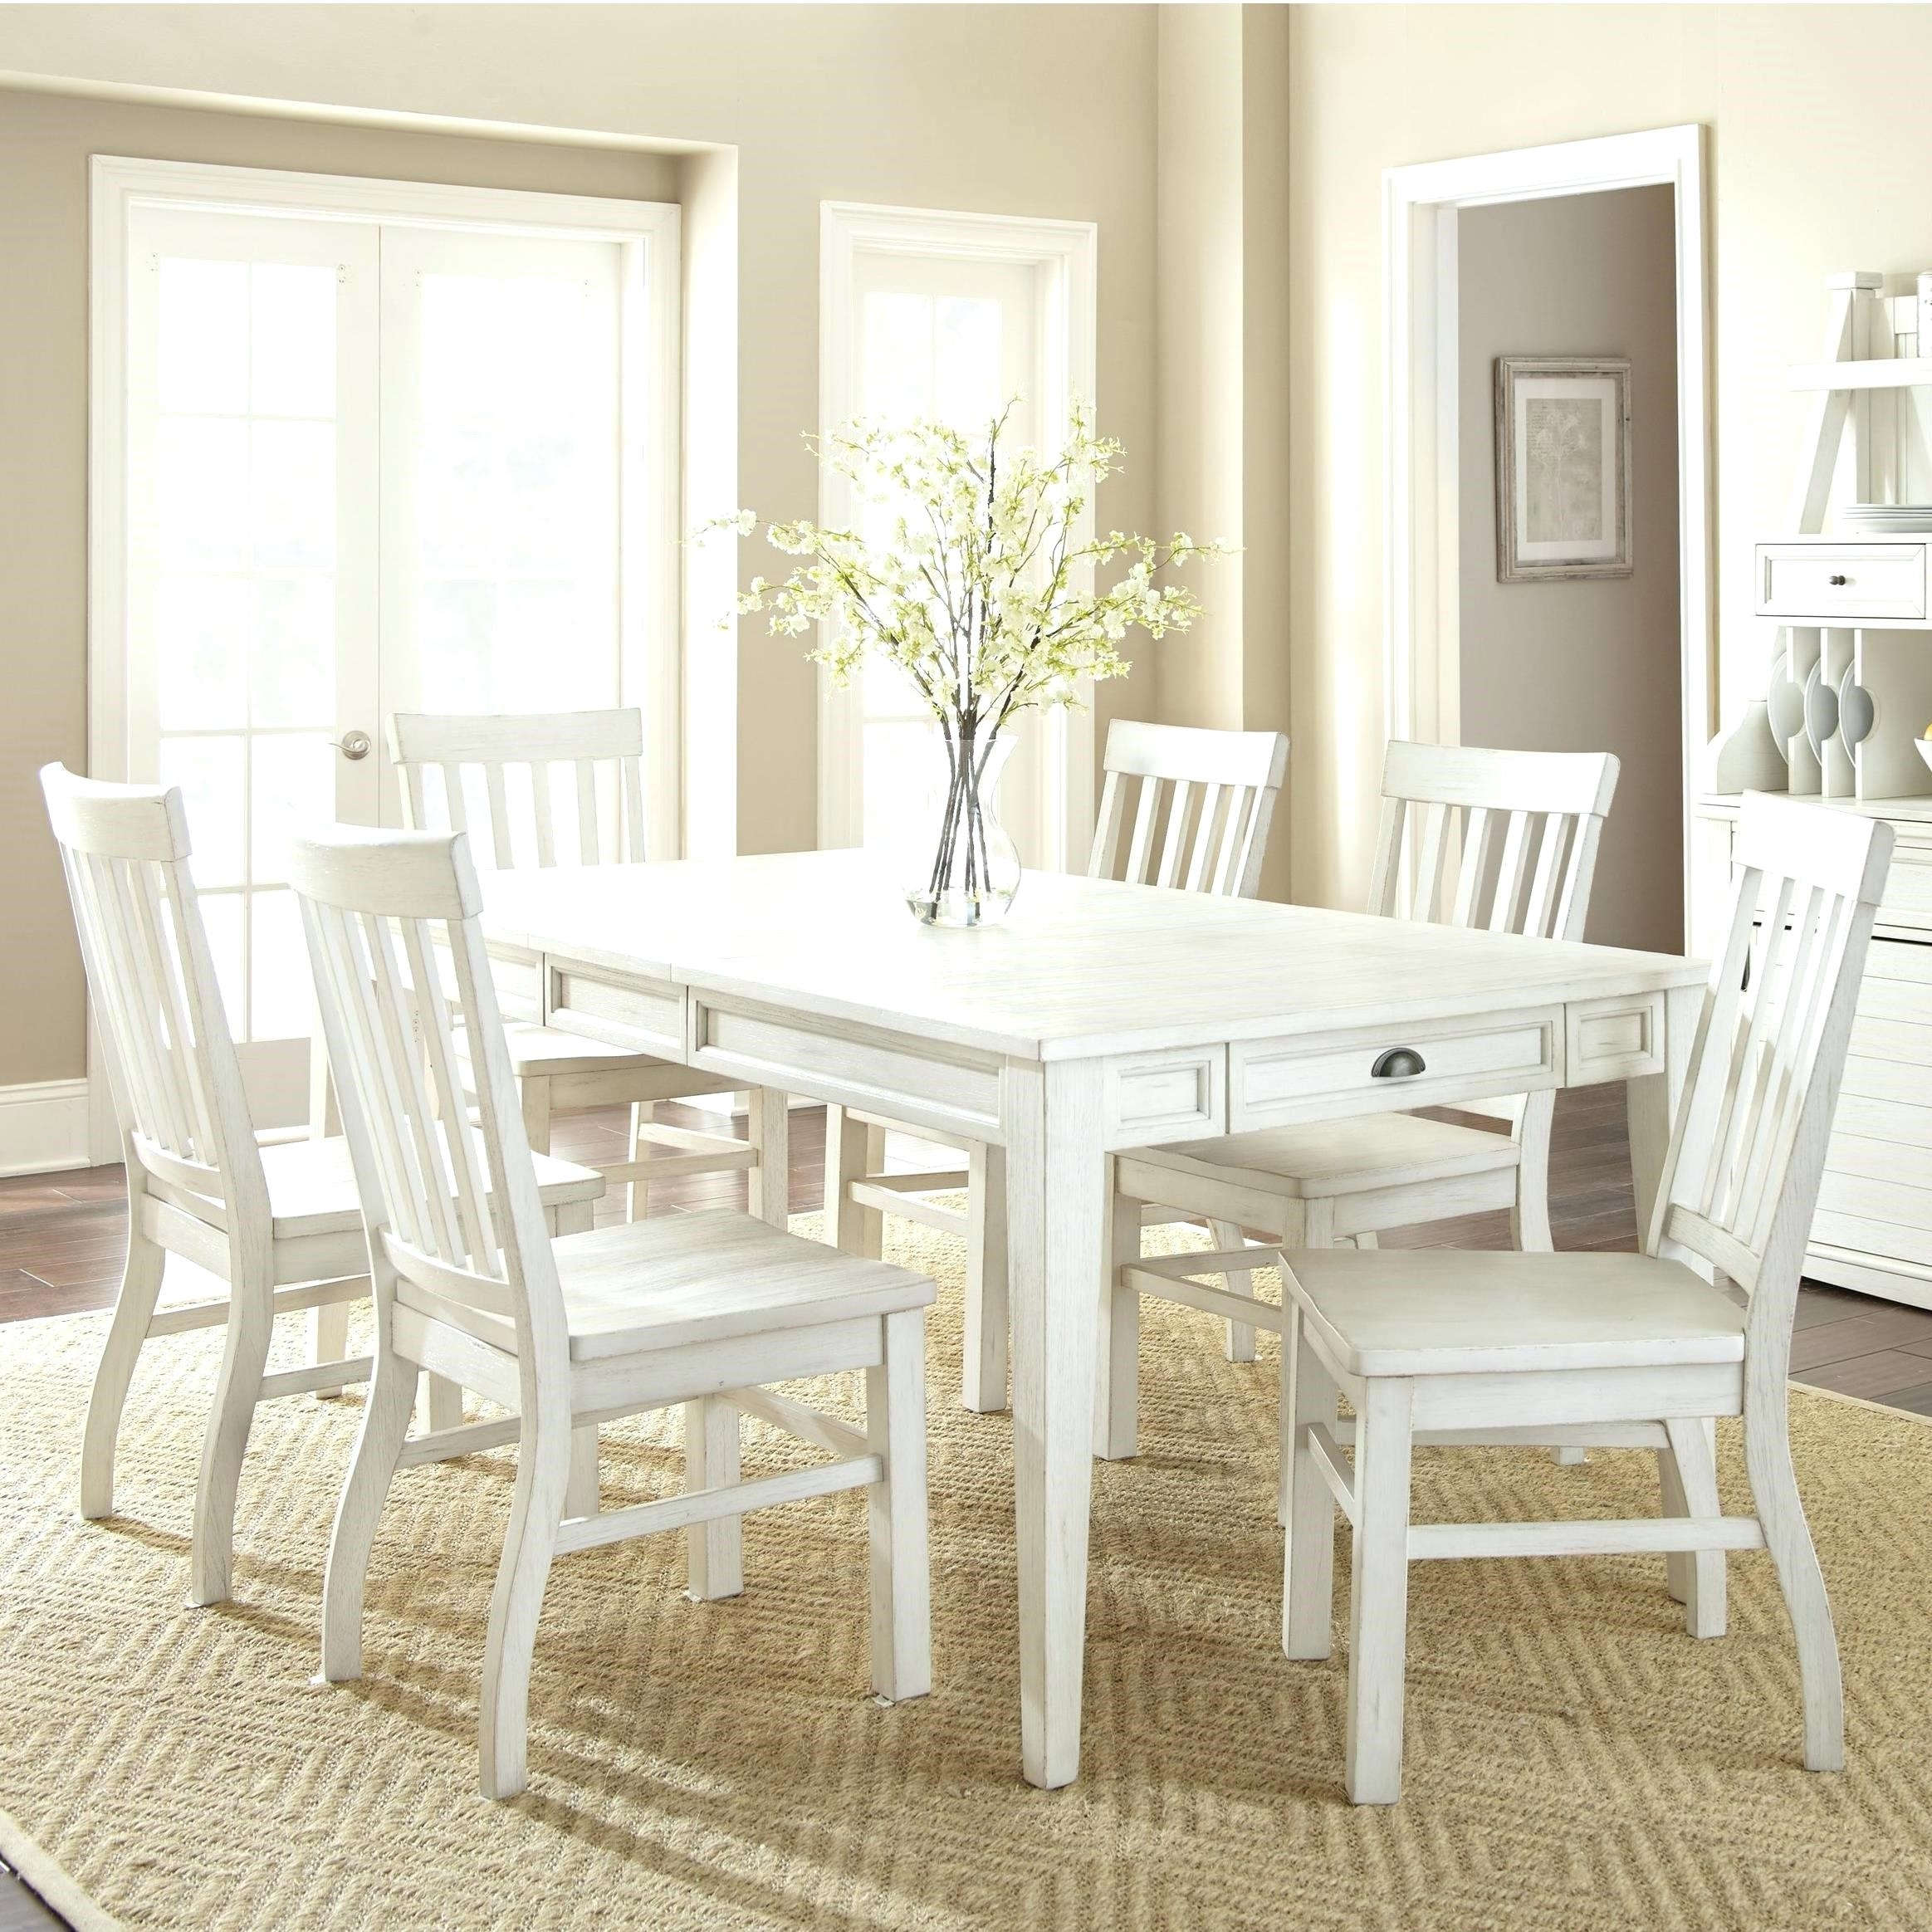 7 Piece Dining Set Under 400 Round Dining Room Set For 4 White Round Inside Most Recently Released Partridge 7 Piece Dining Sets (Image 3 of 20)